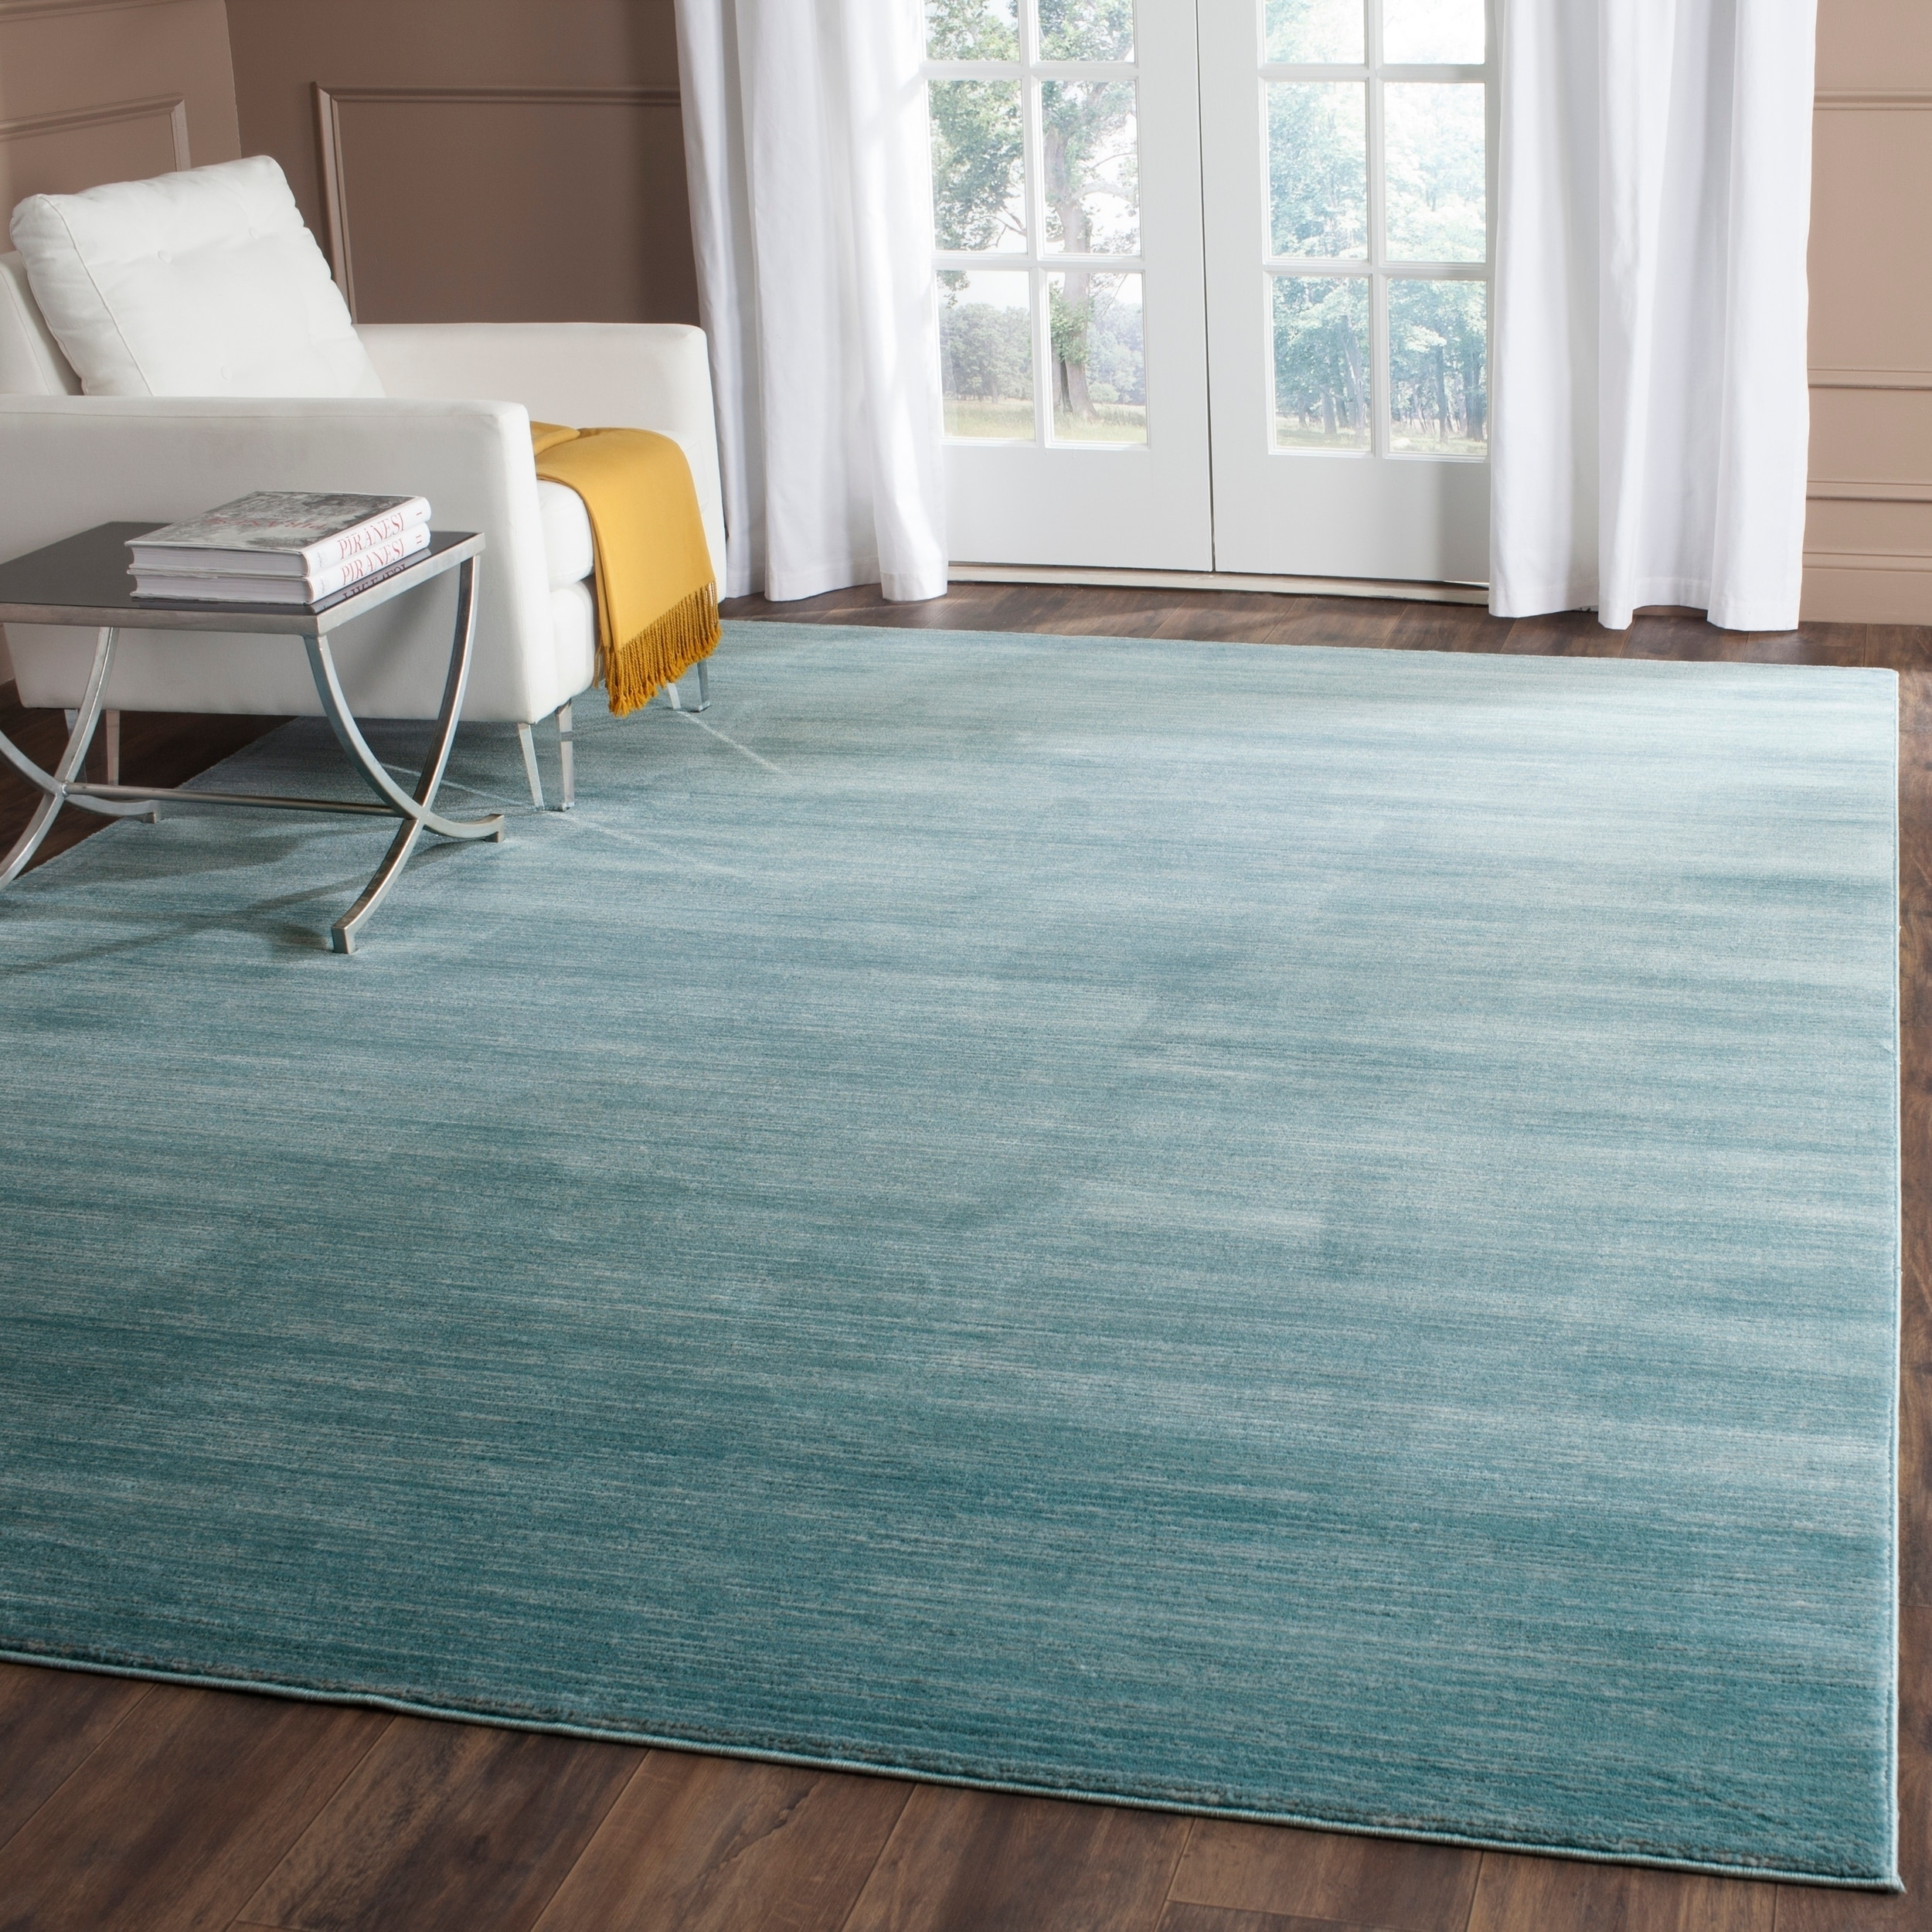 Shop Safavieh Vision Contemporary Tonal Aqua Blue Area Rug 8 X 10